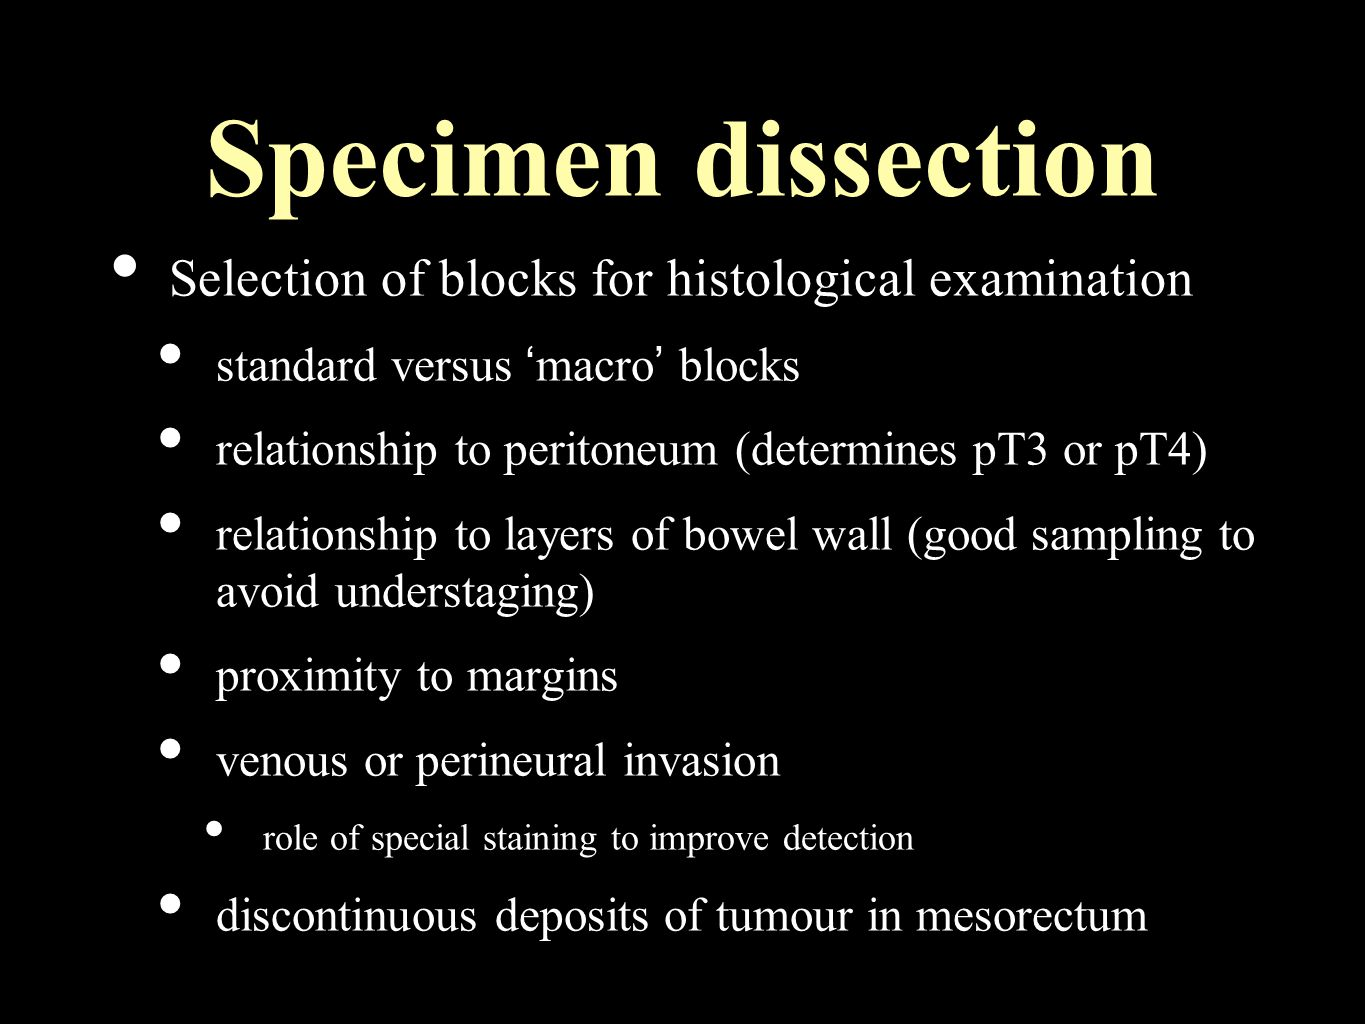 Specimen dissection Selection of blocks for histological examination standard versus ' macro ' blocks relationship to peritoneum (determines pT3 or pT4) relationship to layers of bowel wall (good sampling to avoid understaging) proximity to margins venous or perineural invasion role of special staining to improve detection discontinuous deposits of tumour in mesorectum